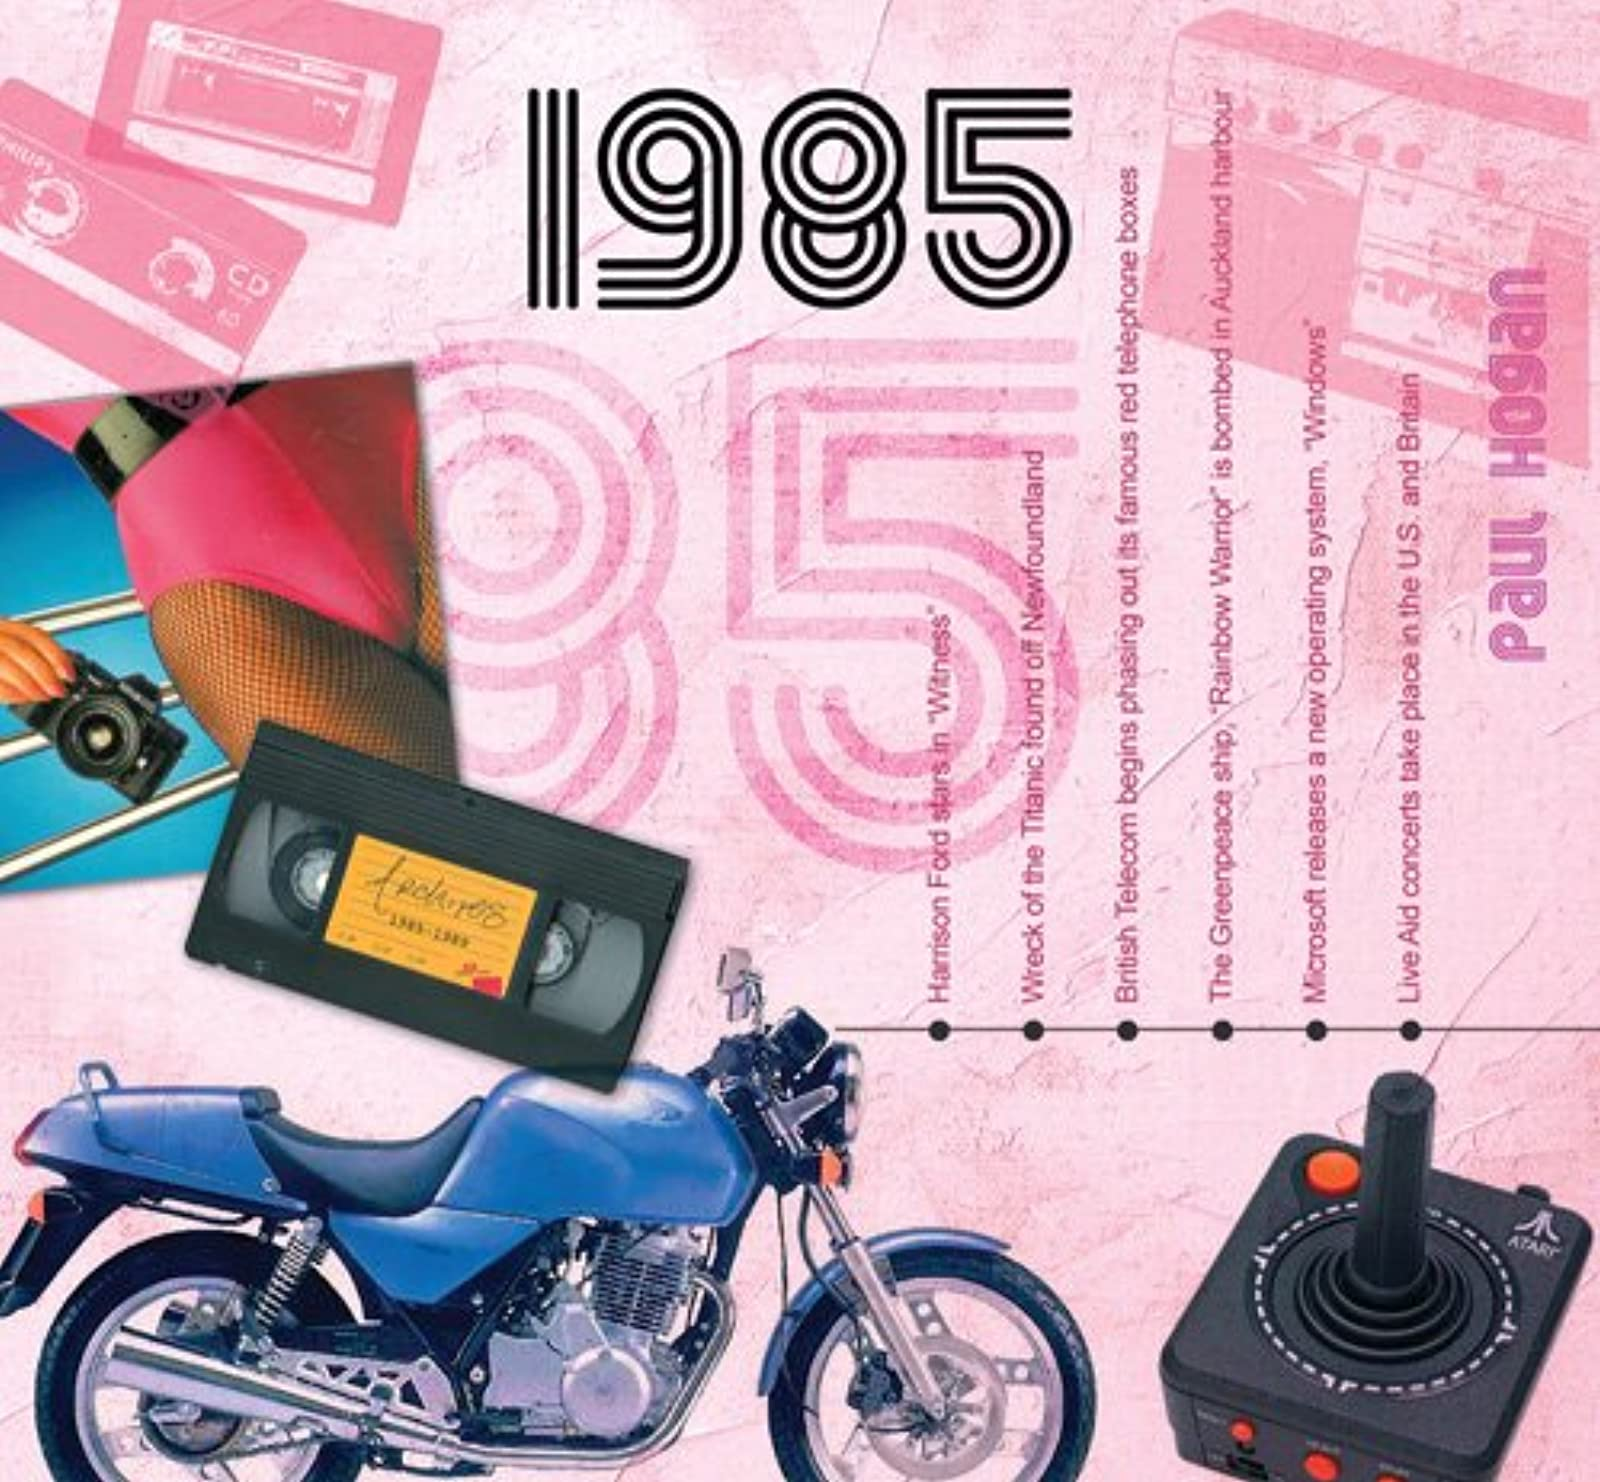 1985 A Time To Remember CD On Audio CD Album